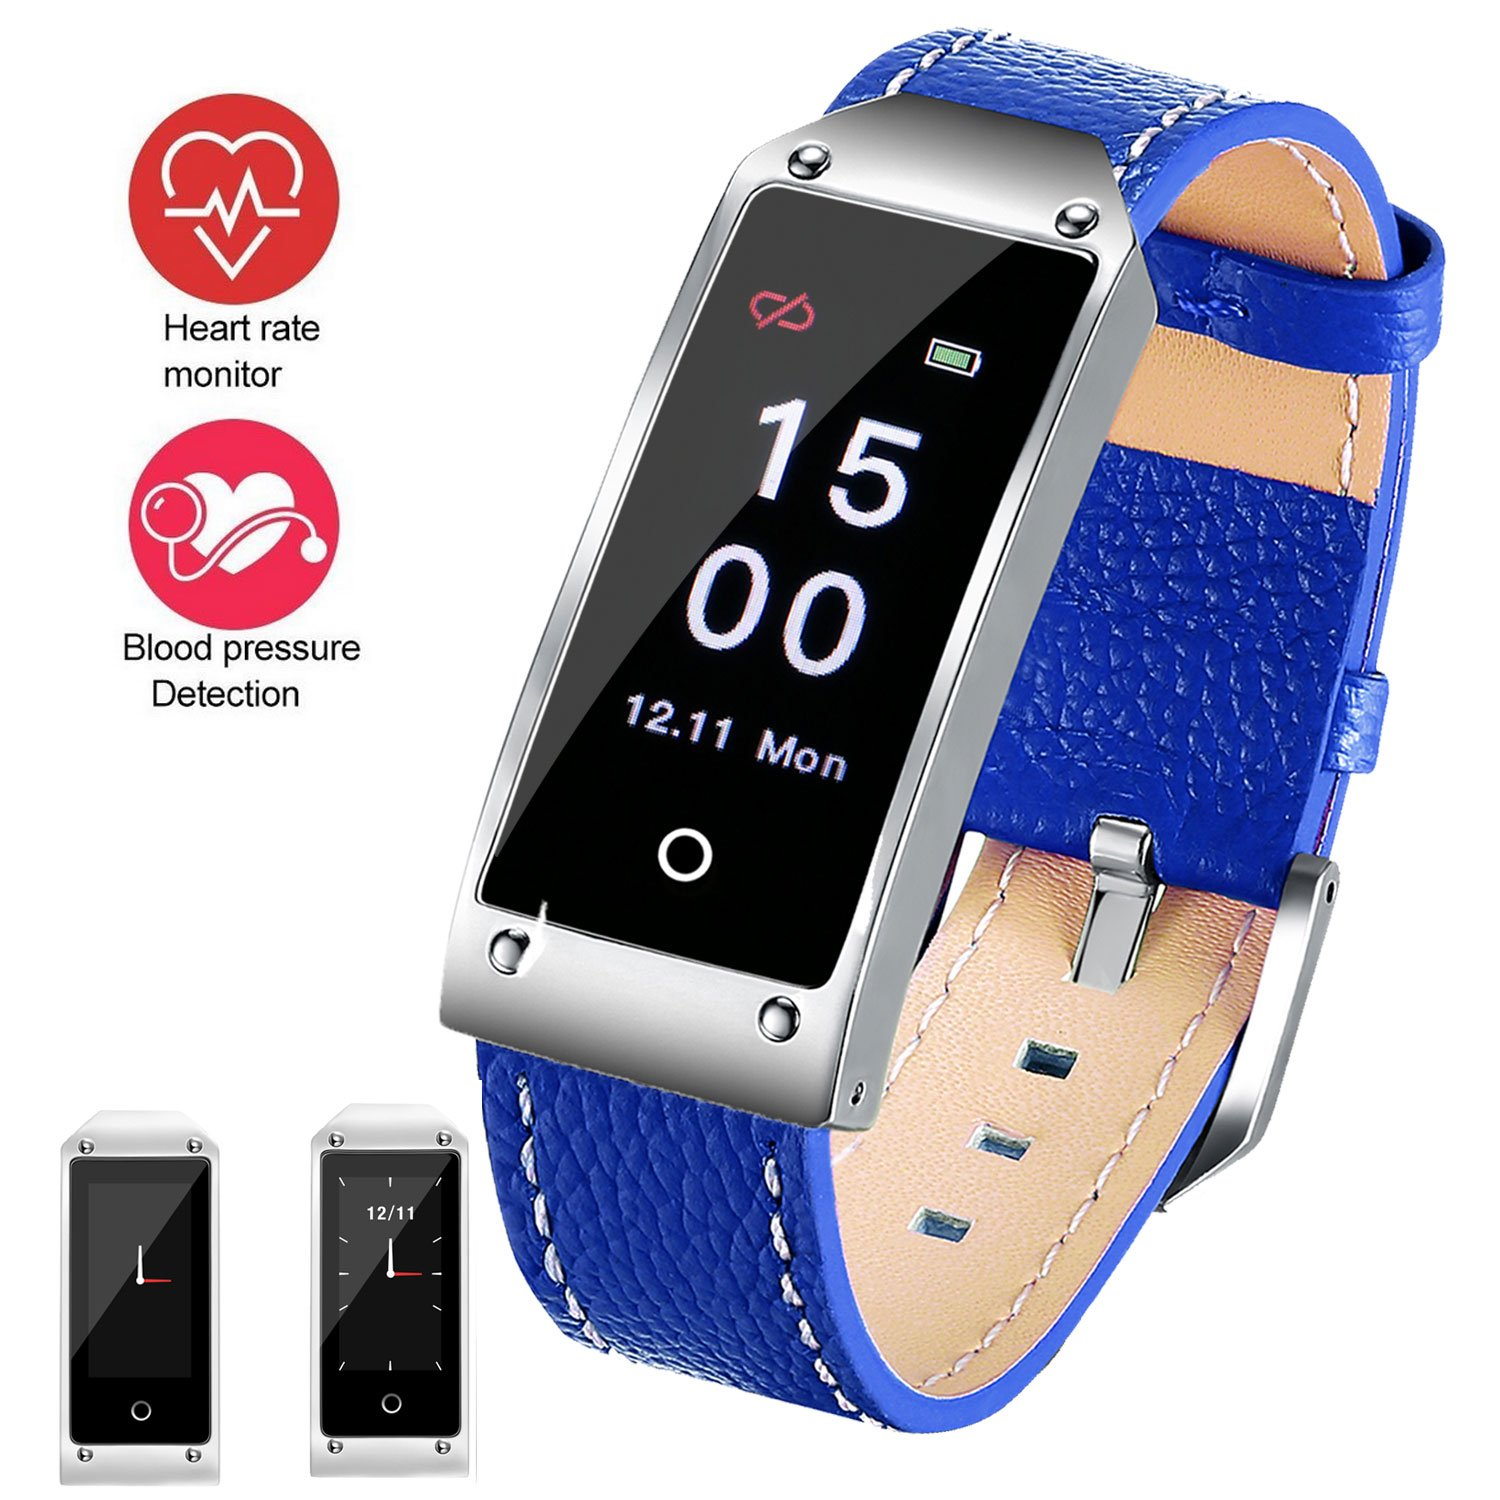 Fitness Tracker Smart Watch,Water Resistant with Heart Rate Monitor/Blood Pressure/Sleep Monitor/Pedometer/Timer/Intelligent Reminder with Soft Genuine Leather Band for Android or iOS Blue by feifuns